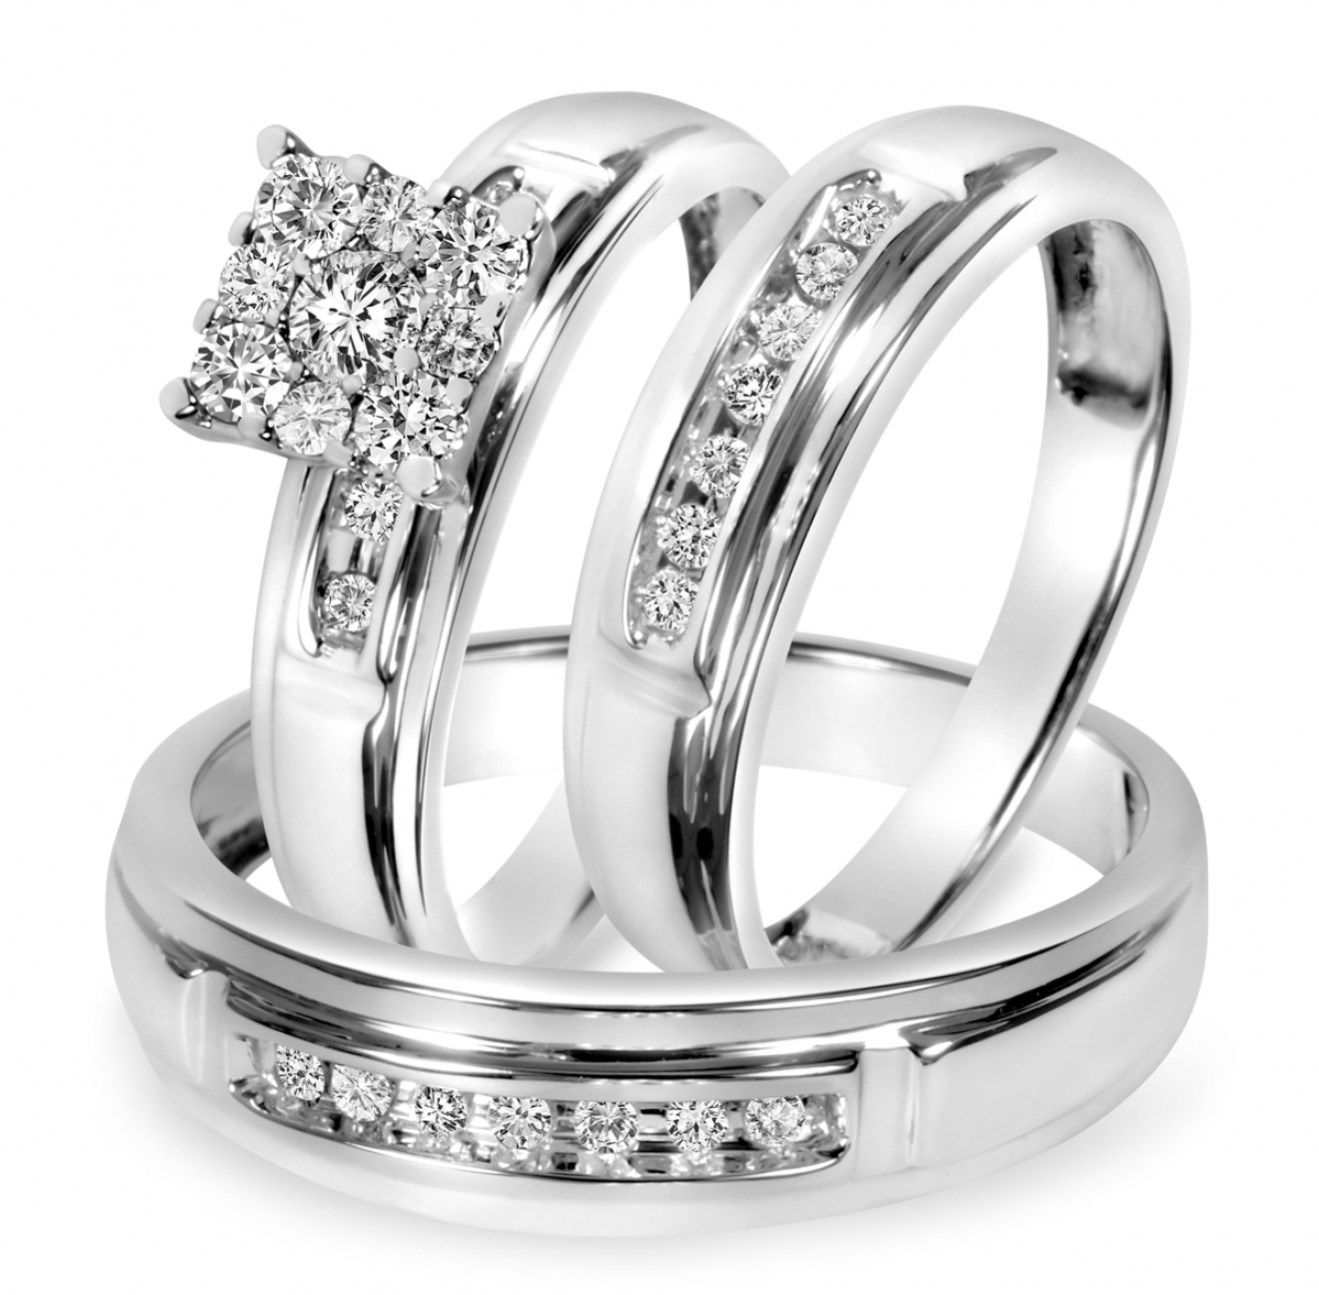 Walmart Wedding Rings Sets For Him And Her White Gold Addicfashion